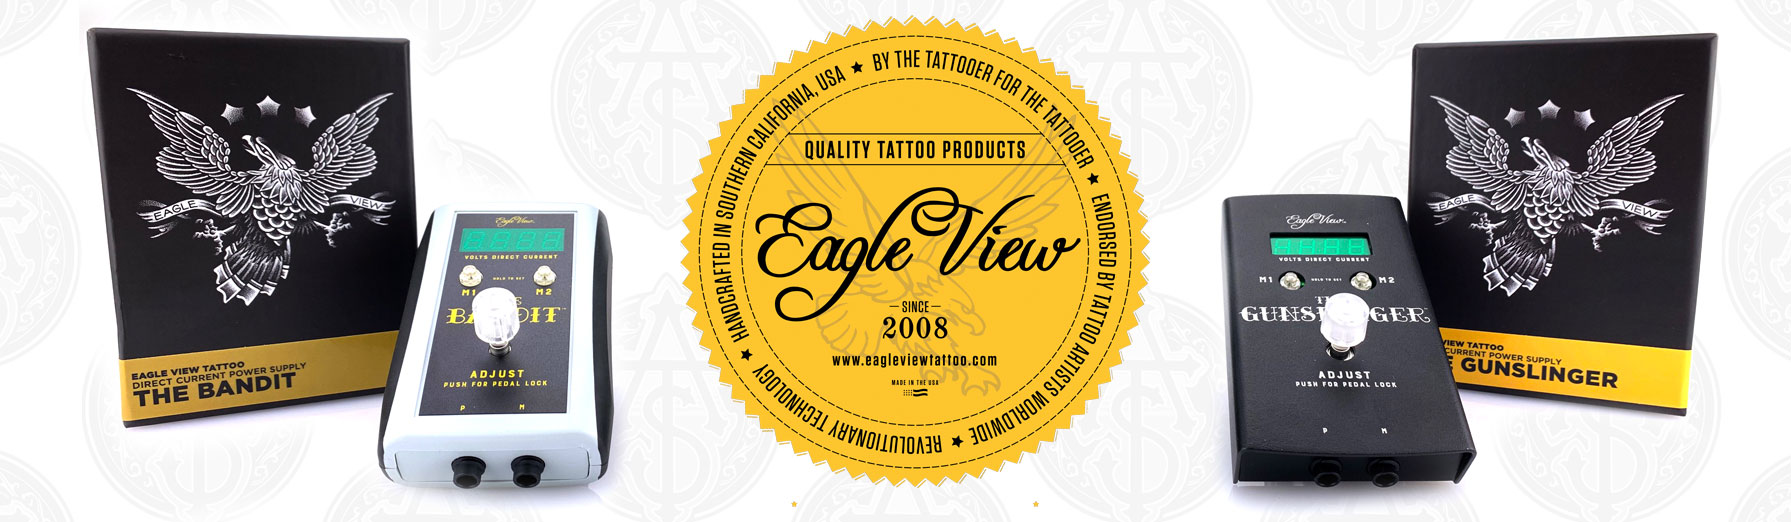 Eagle View DC Power Supplies  -  Alliance Tattoo Supply